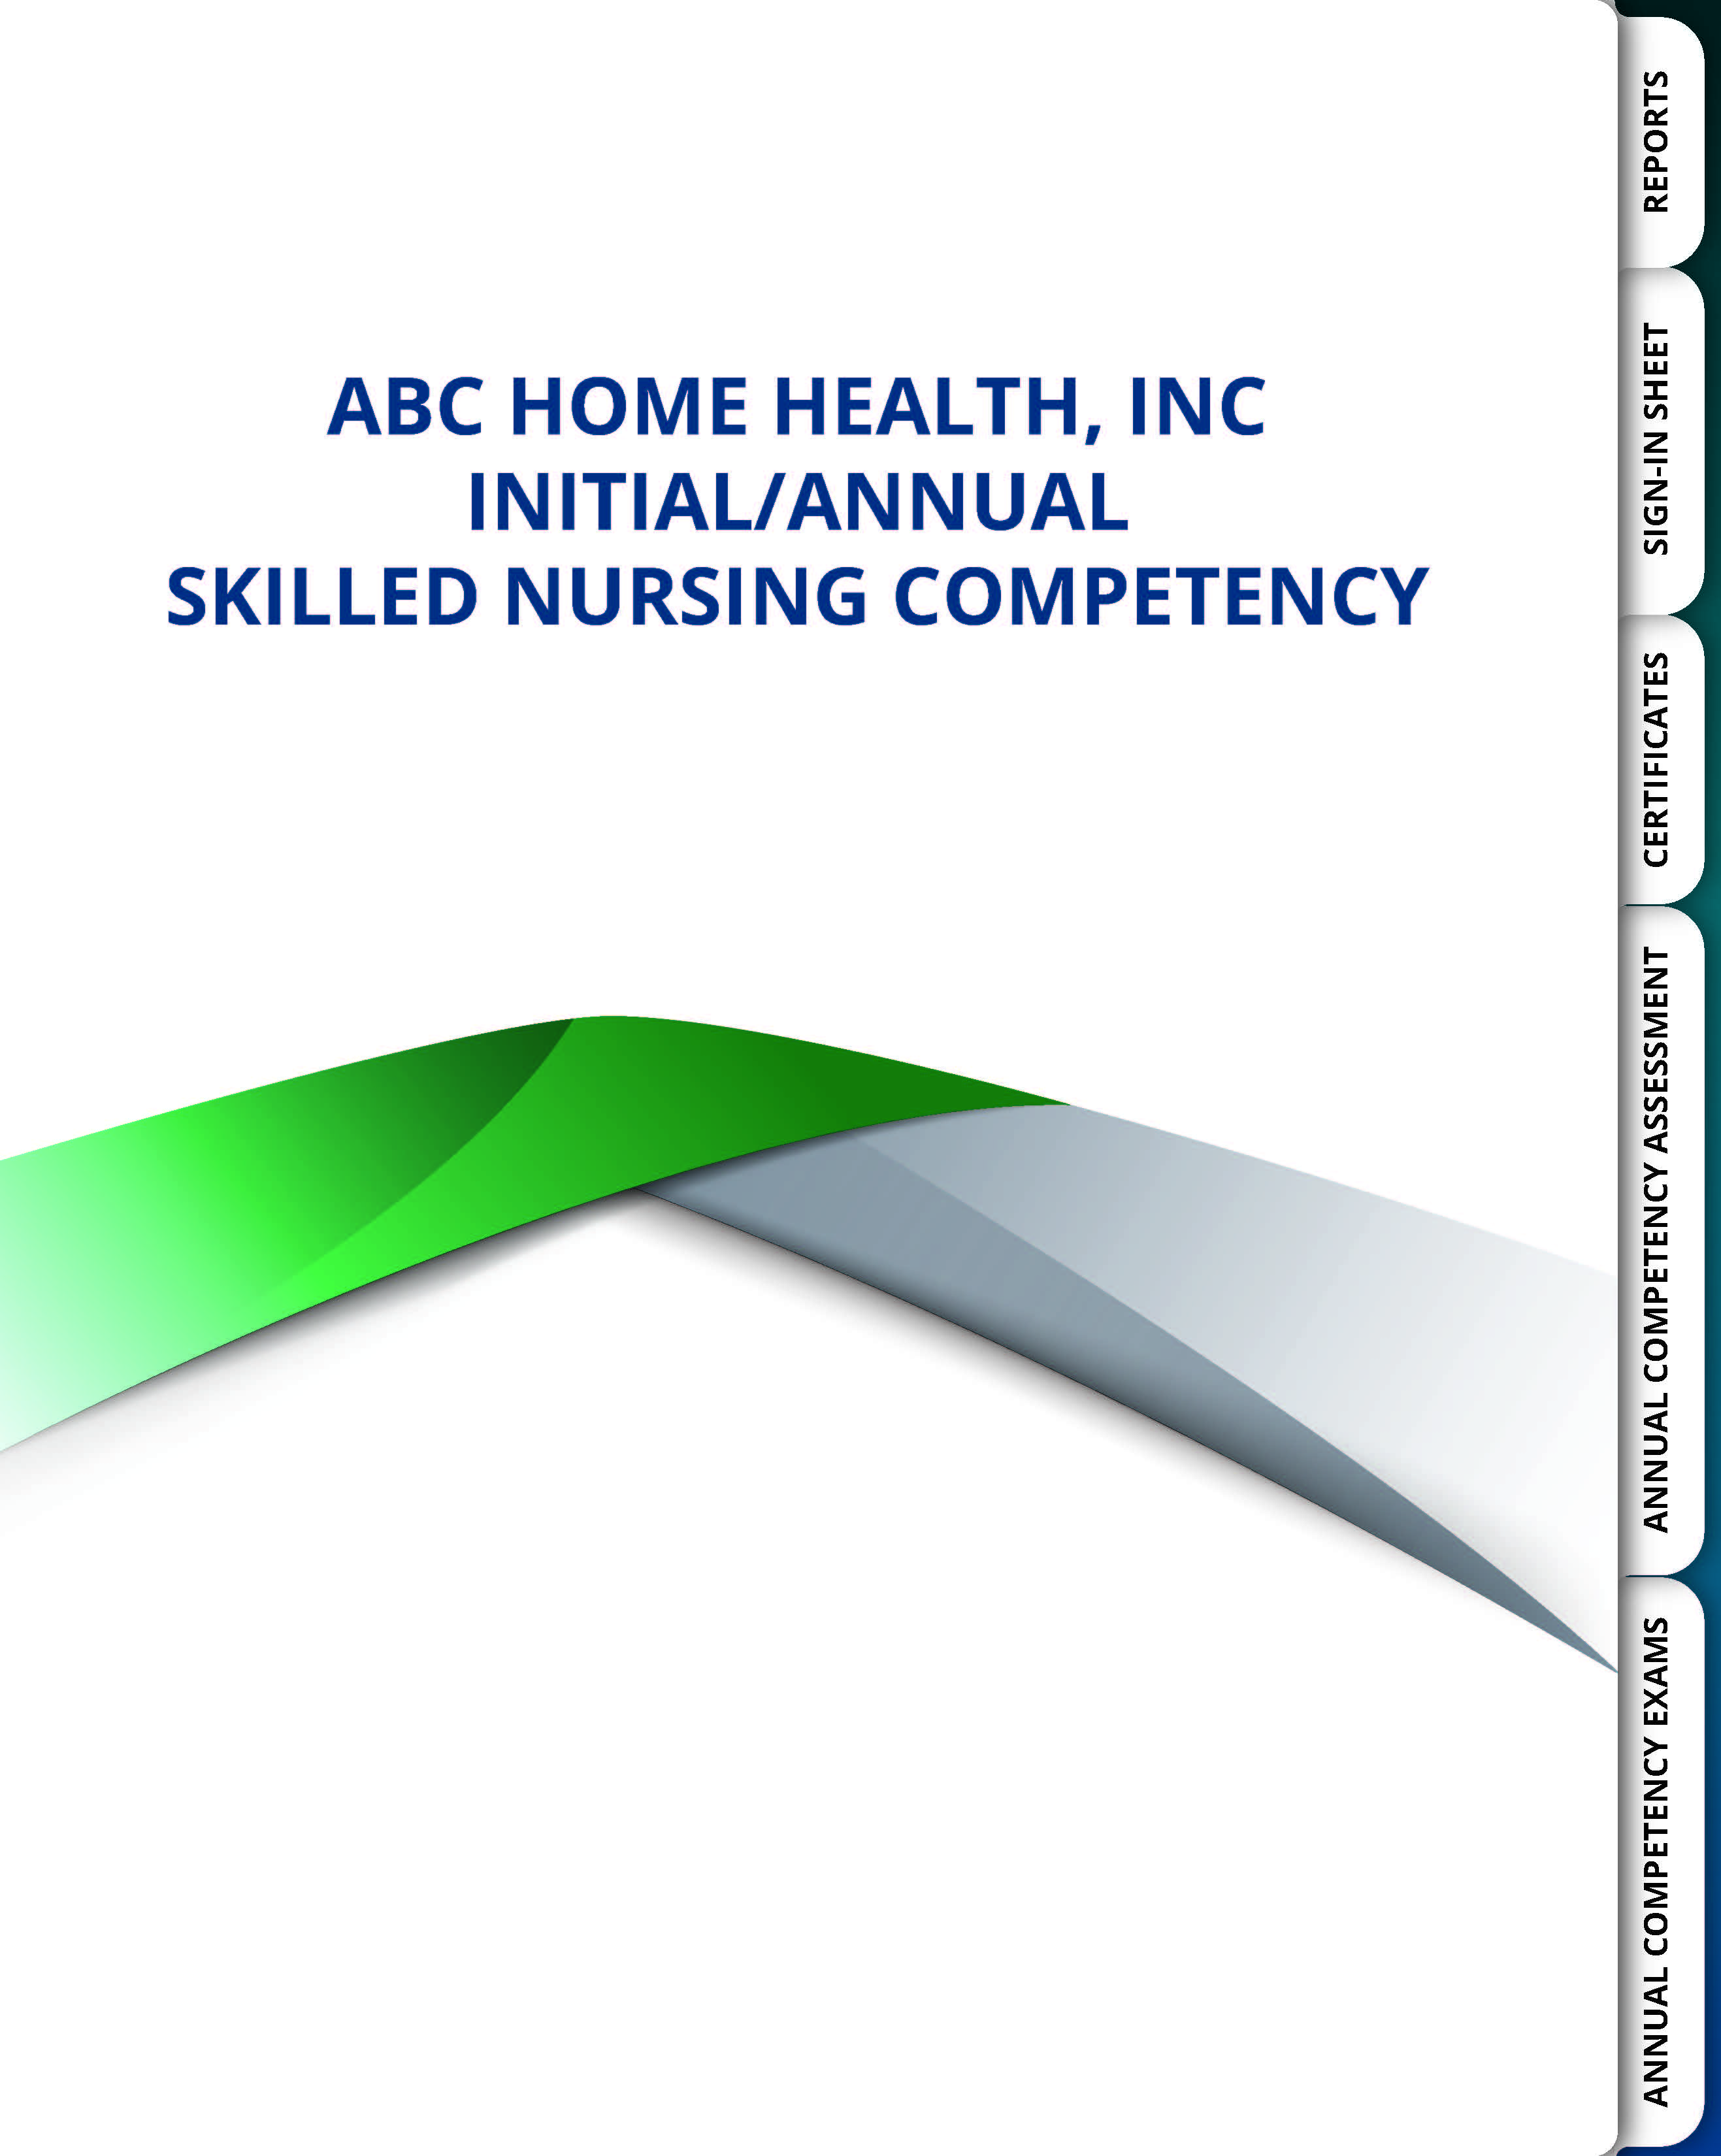 https://amityhealthcaregroup.com/wp-content/uploads/ABC-Home-Health_Page_1-1.jpg